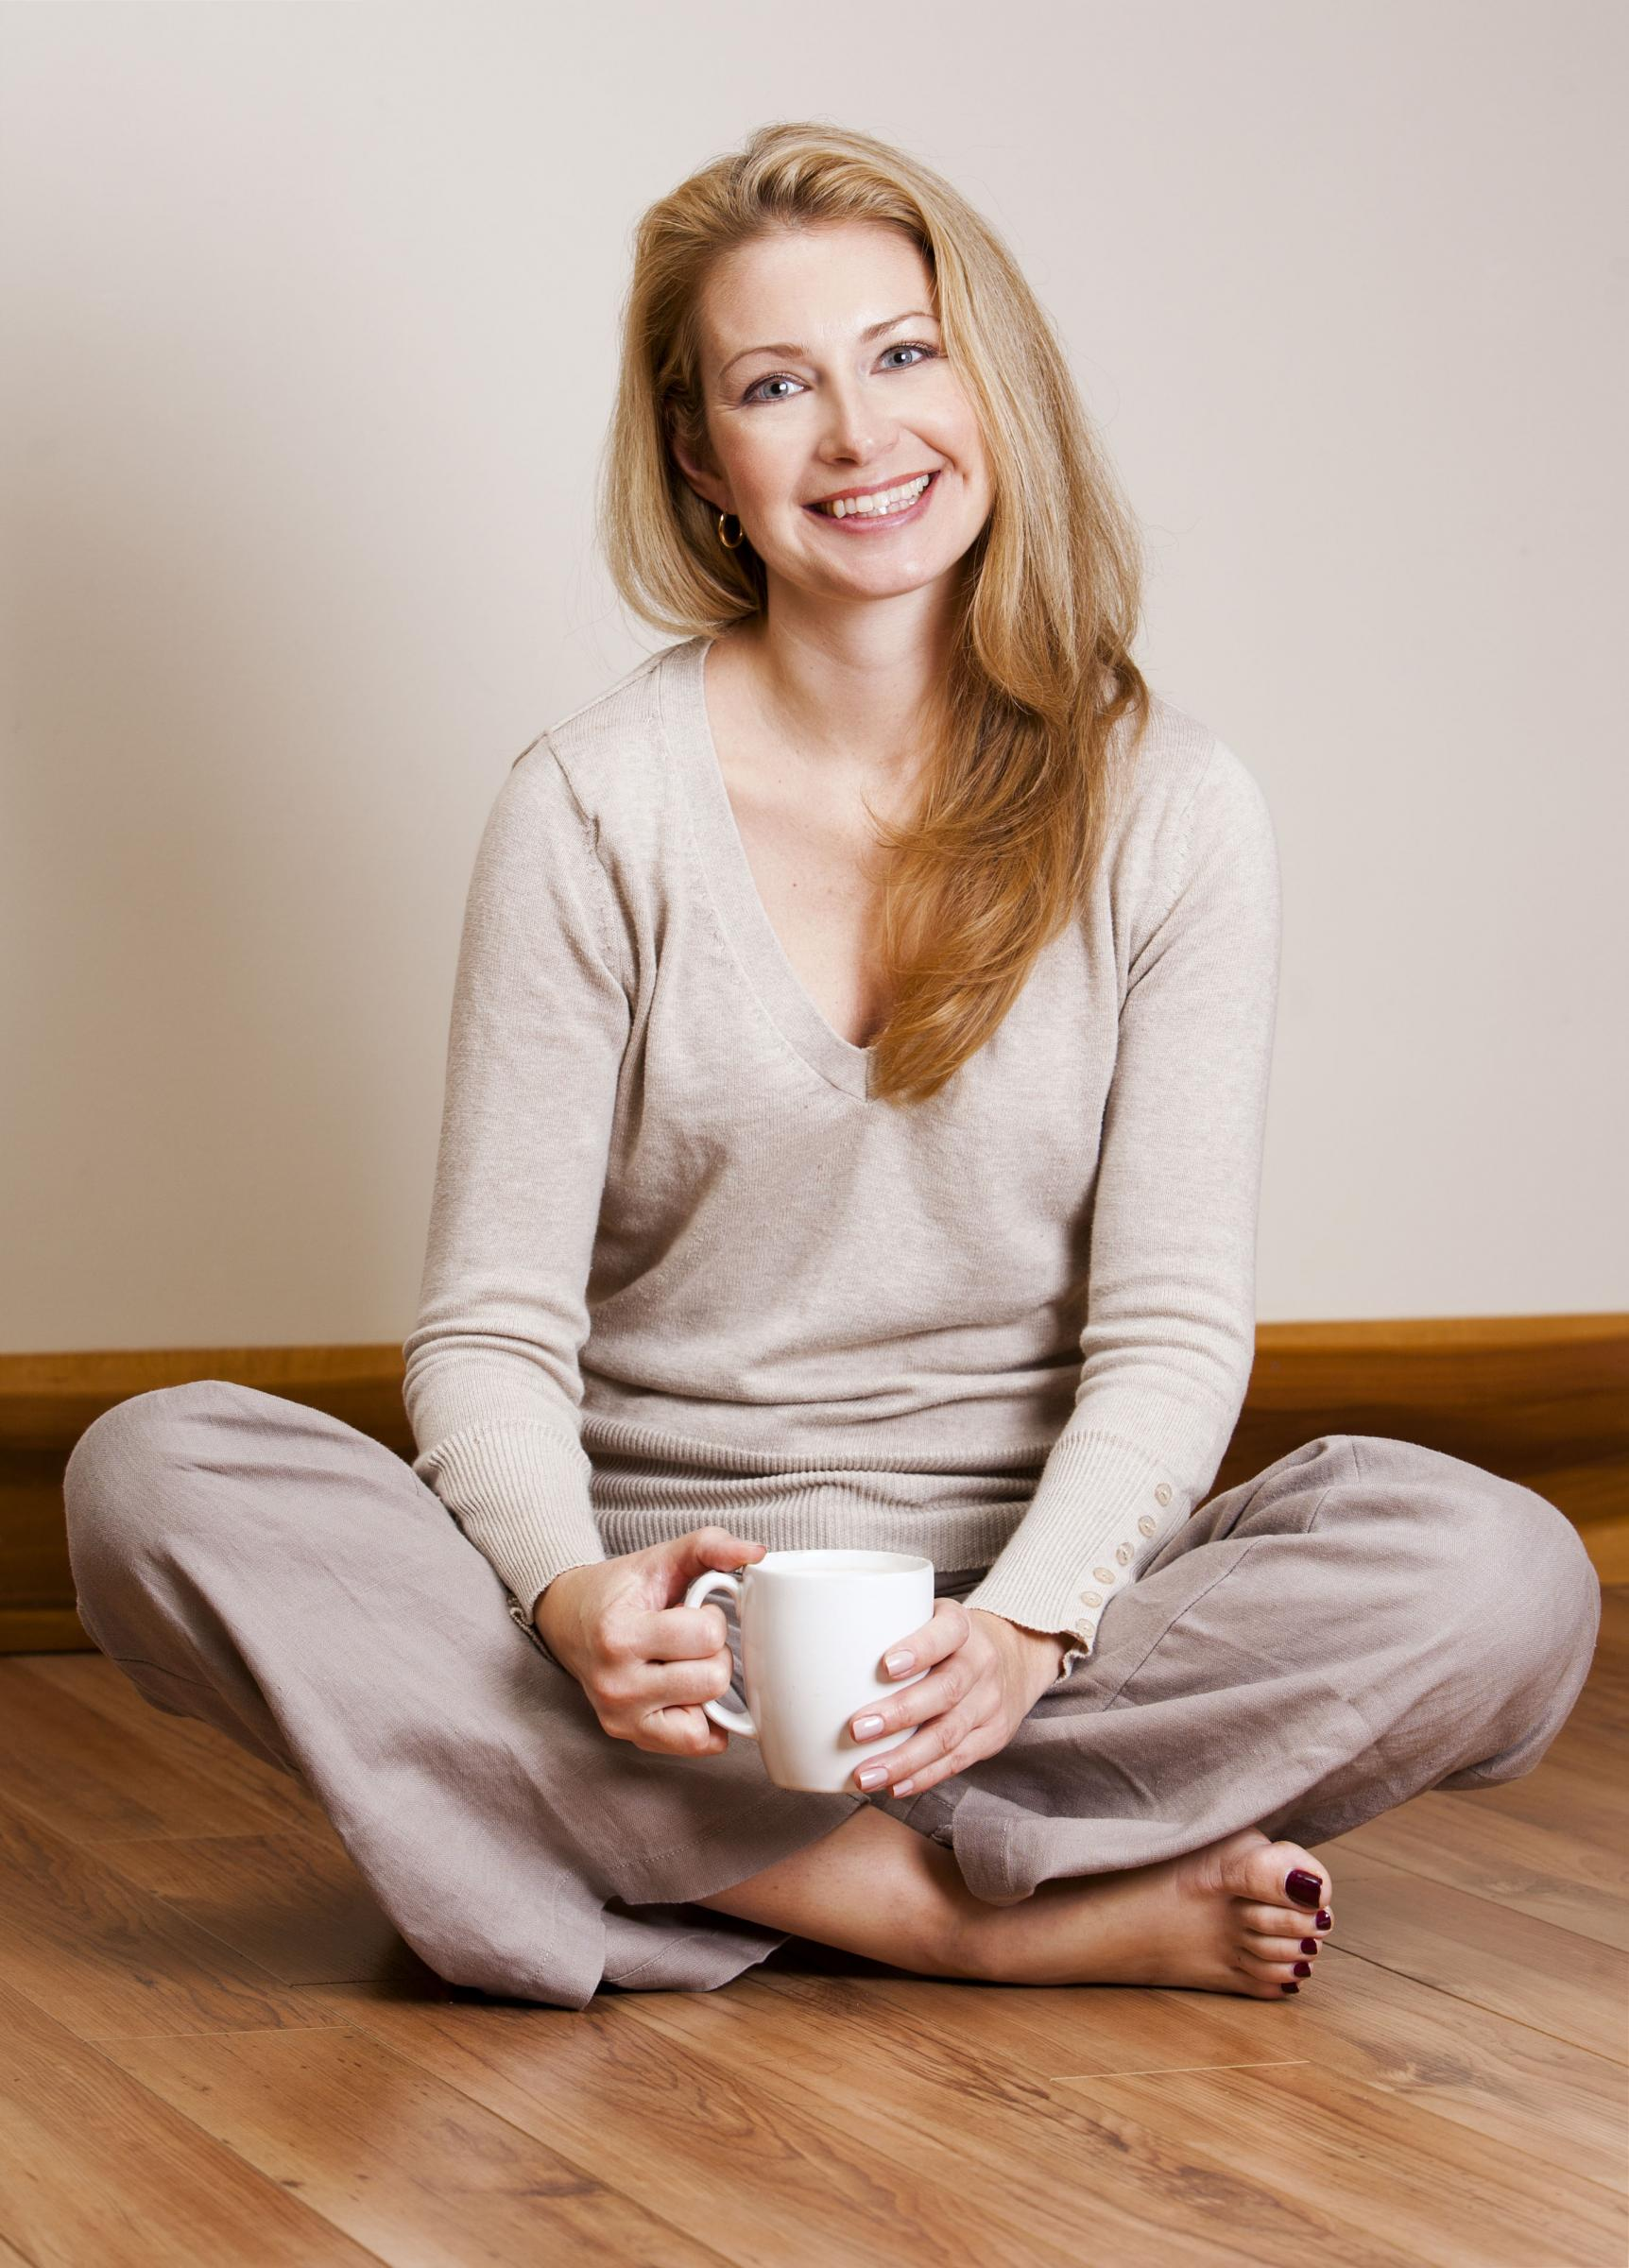 smiling woman sitting cross-legged on the floor holding coffee cup